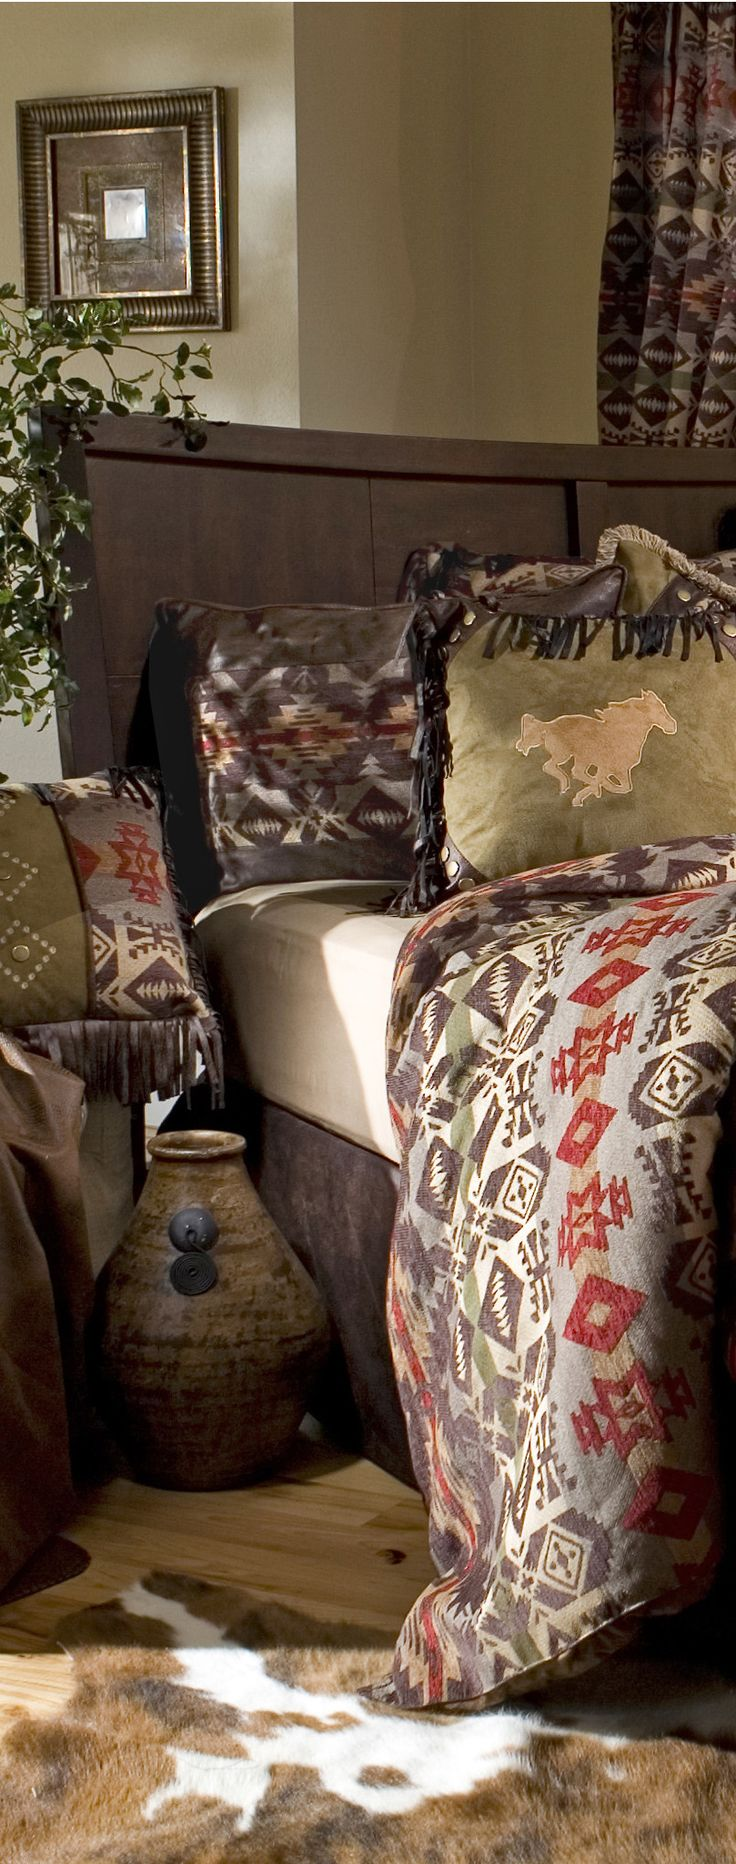 Rustic bedding sets lodge amp log cabin bedding - Find Rustic Wildlife Lodge And Mountain Bedding Sets Bring The Feeling Of The Woods Into Your Bedroom With A Cozy Log Cabin Comforter Or Quilt Set